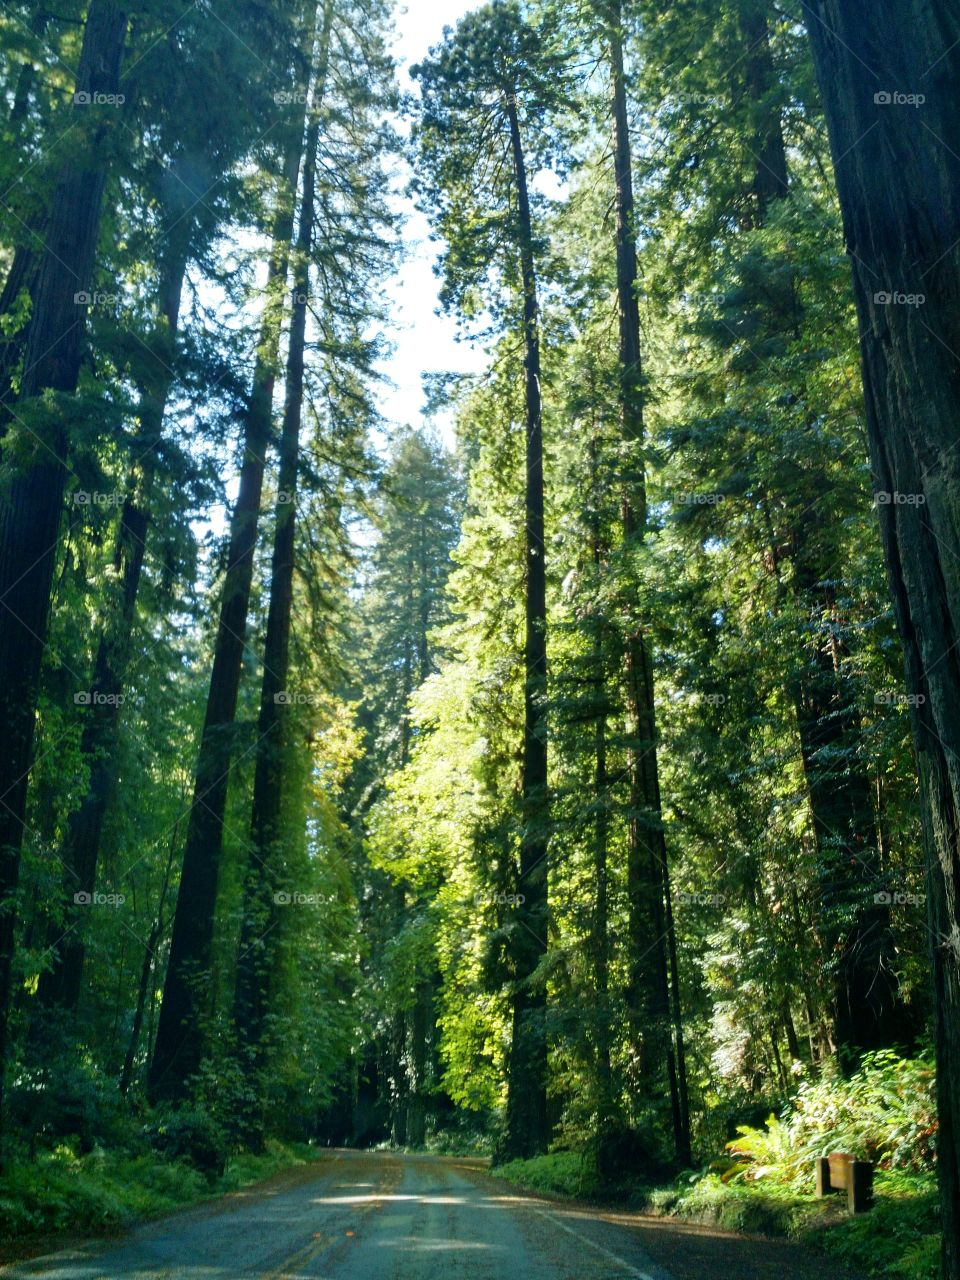 Humbolt Redwoods. August 2015